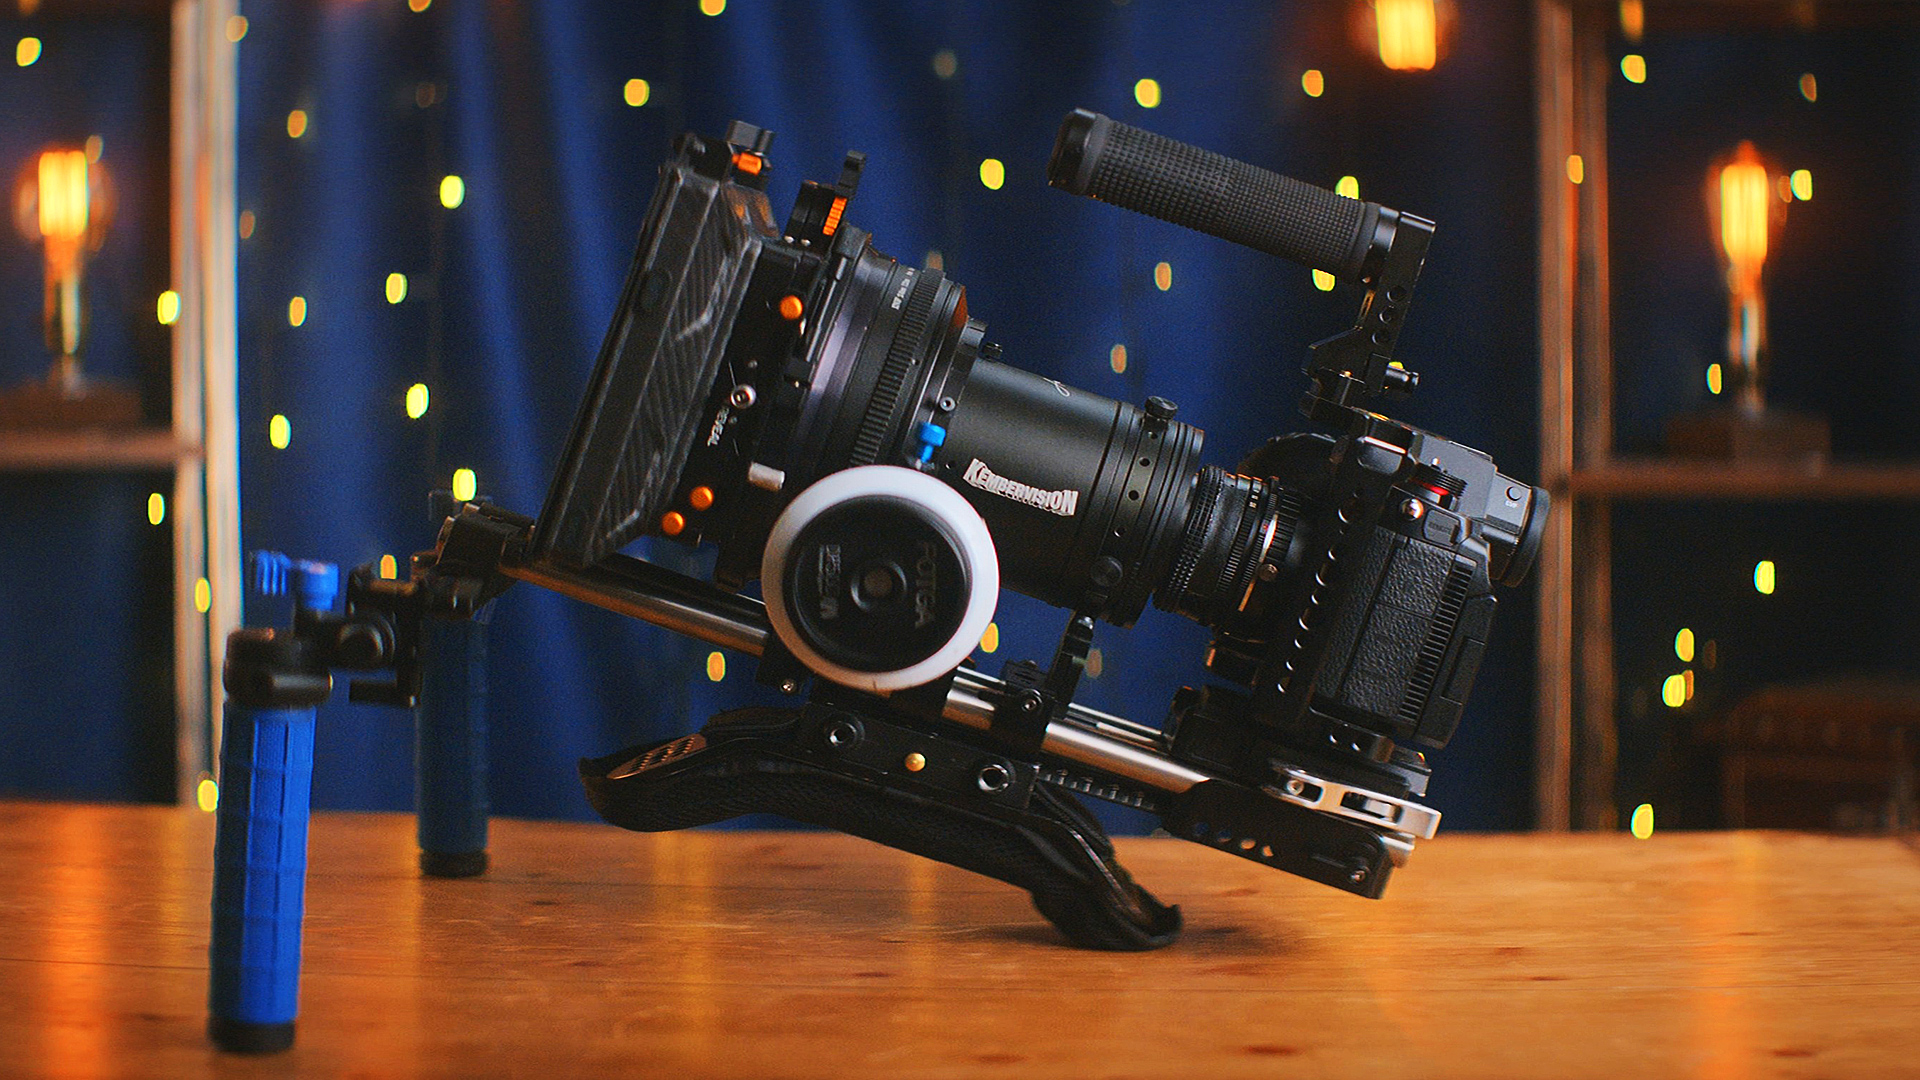 Yes, it is possible to make your own anamorphic lens for a fraction of the price of a 'real' one.